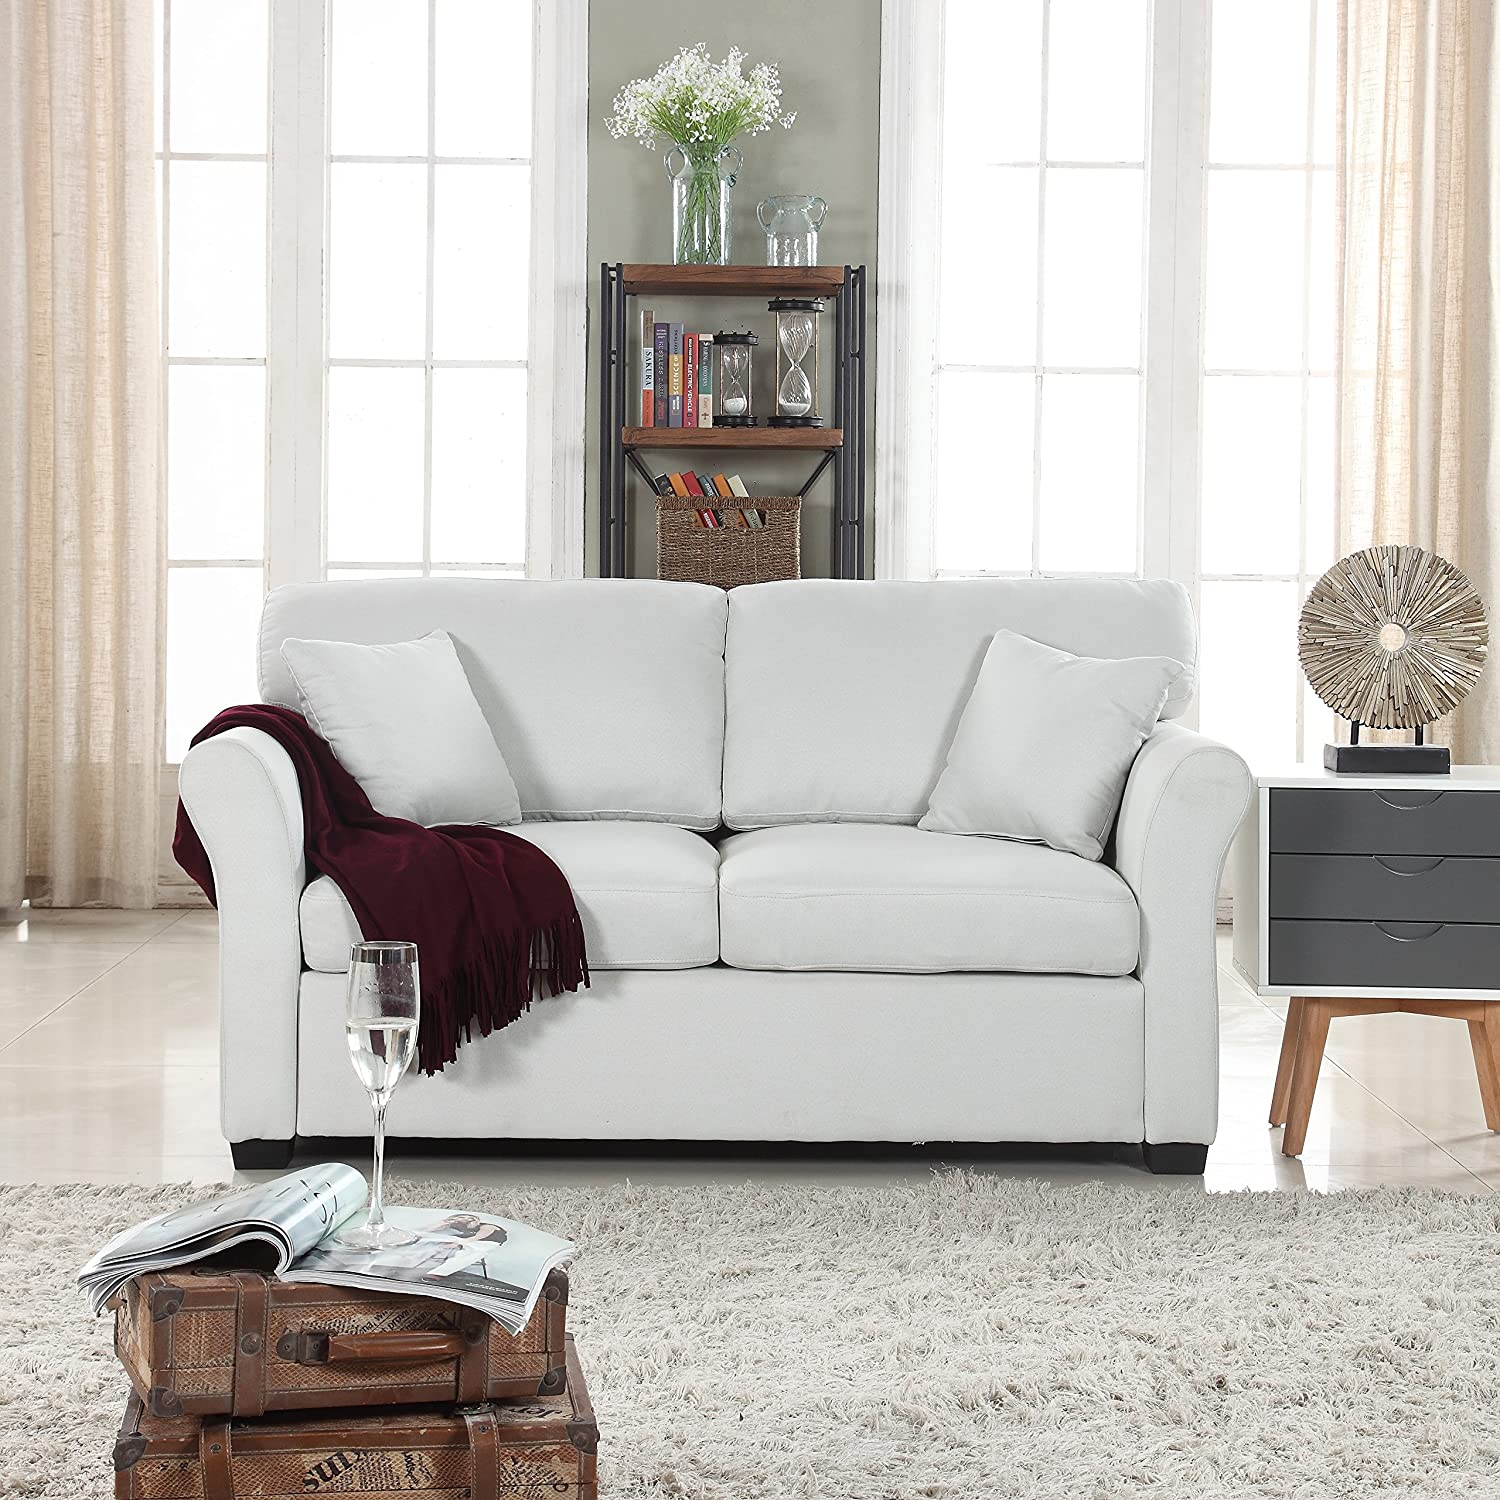 Classic Traditional Ultra Comfortable Linen Fabric Loveseat - Living Room Fabric Couch (Beige) Divano Roma Furniture EXP121-FB-2S